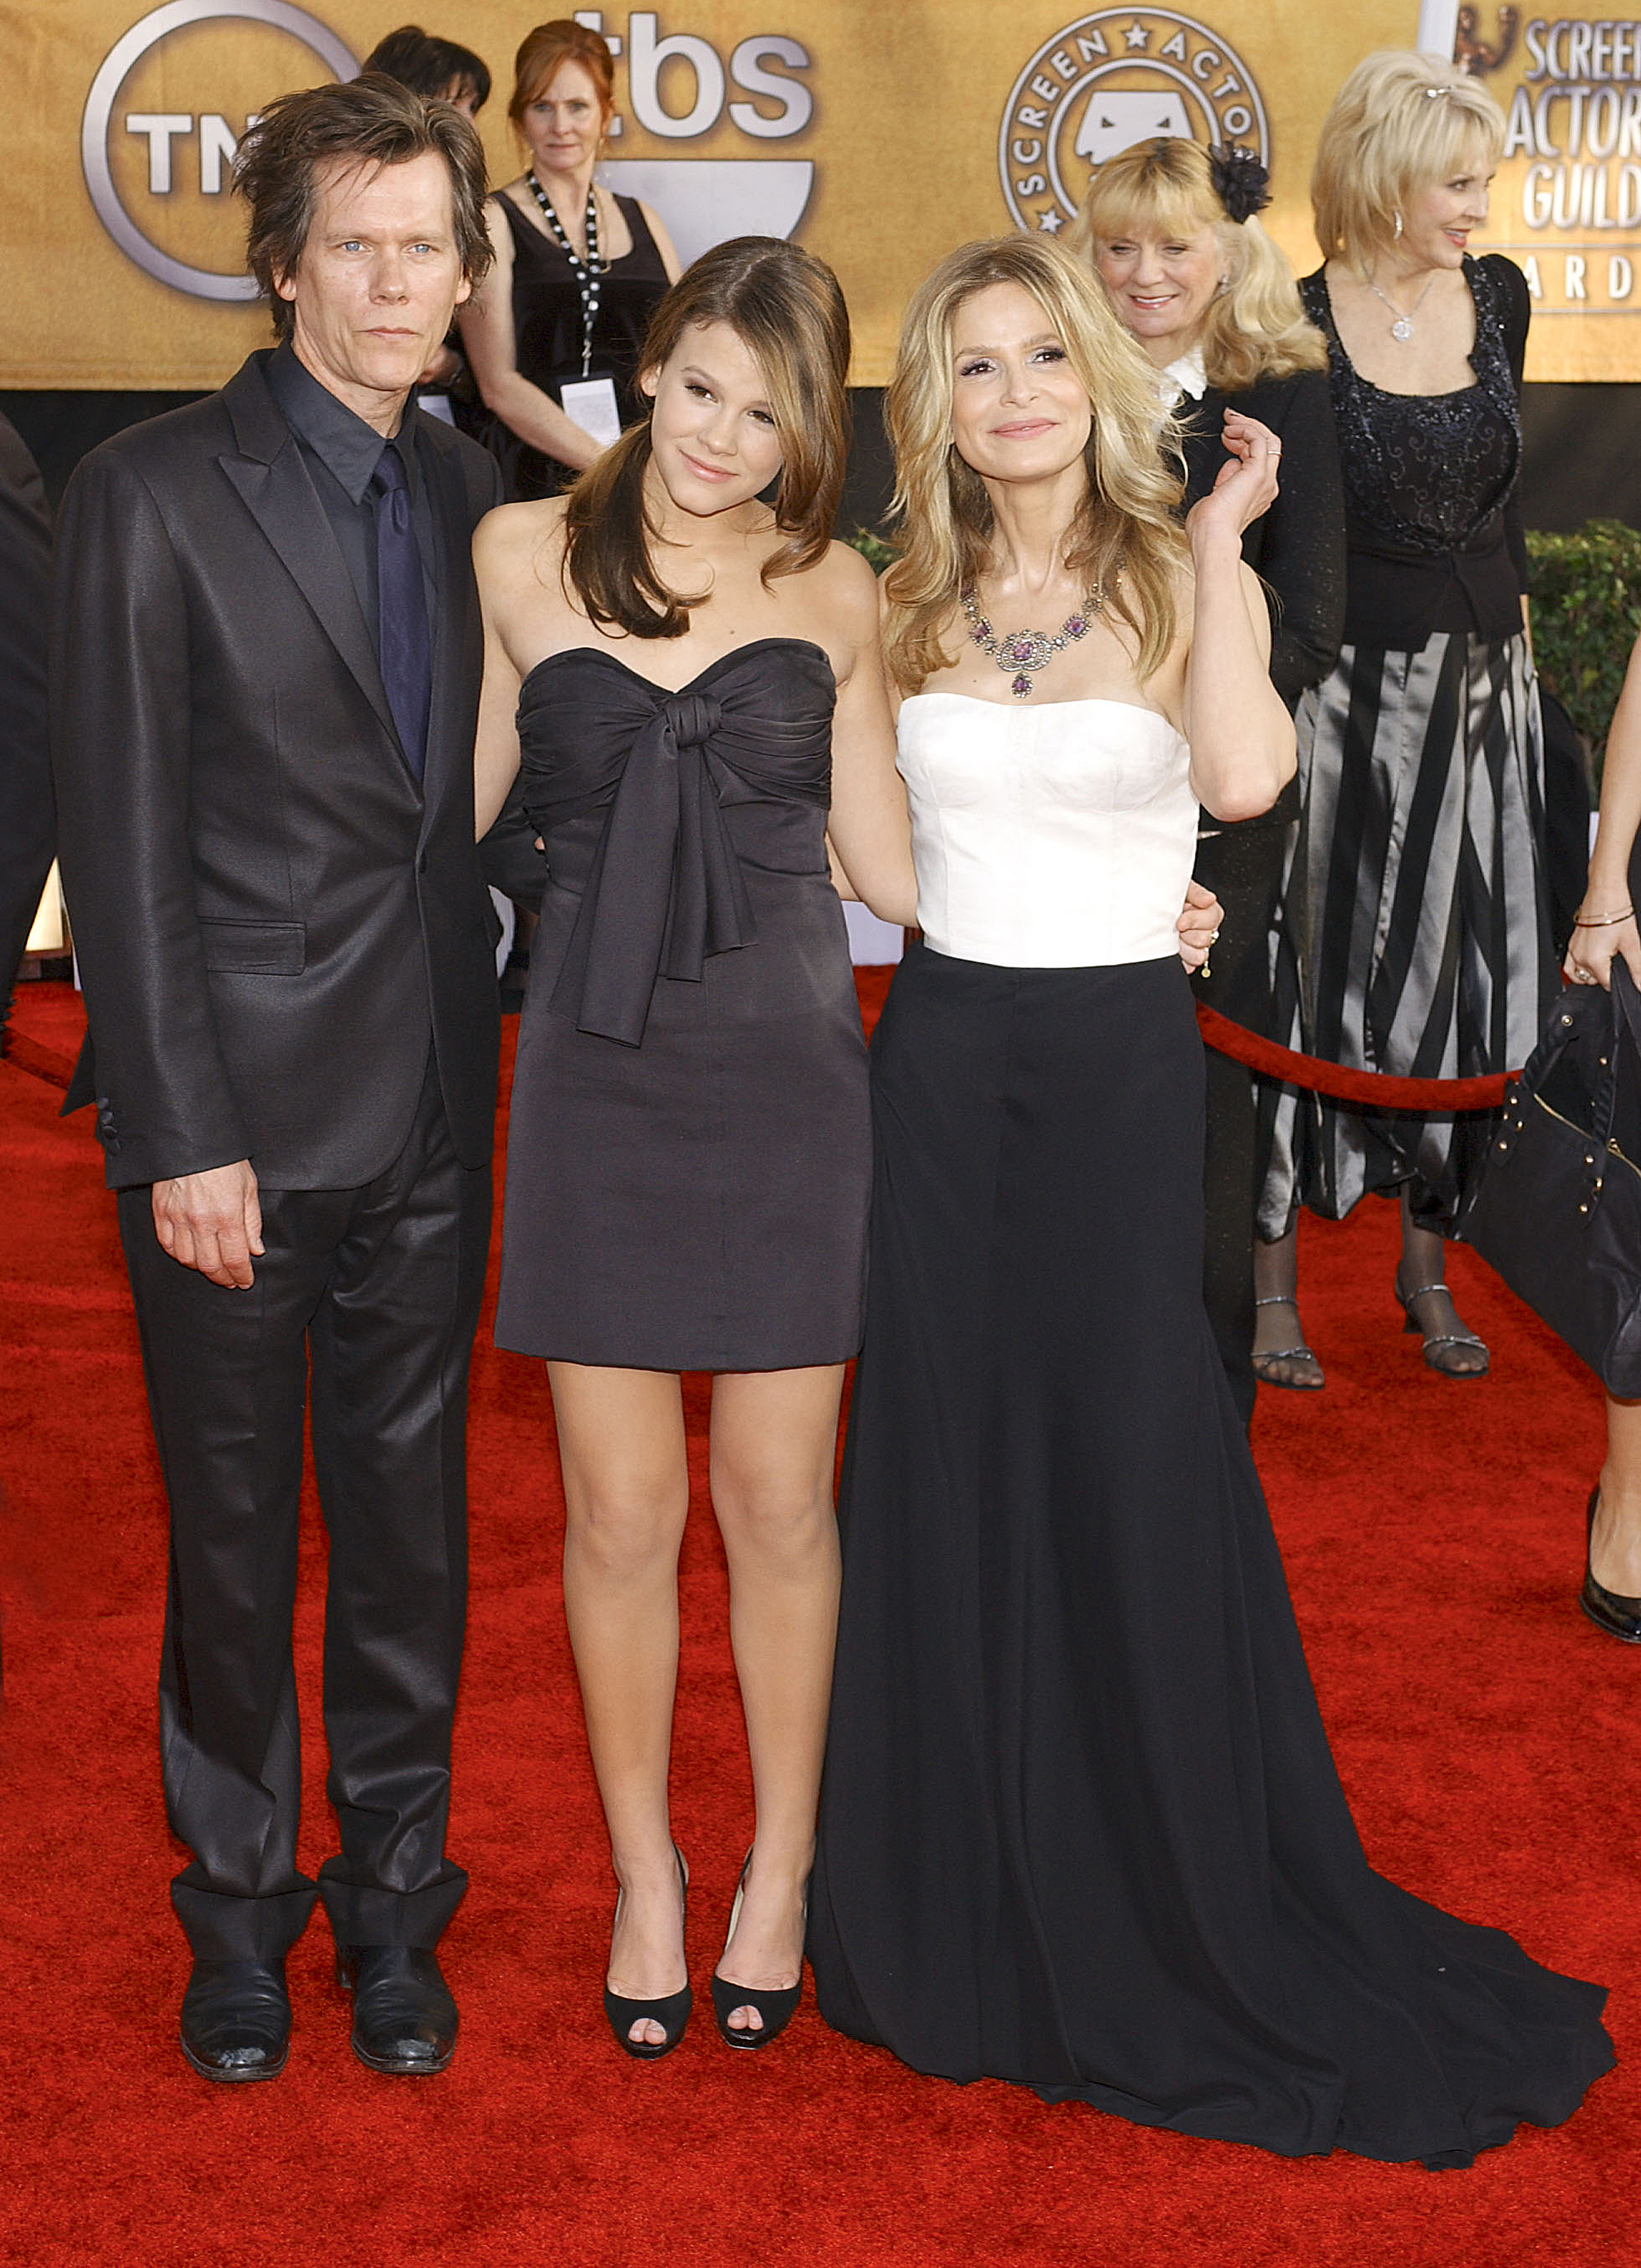 Kevin Bacon, Sosie Bacon and Kyra Sedgewick 15th Annual Screen Actors Guild Awards held at the Shrine Exposition Center - Arrivals Los Angeles, California - 25.01.09  Featuring: Kevin Bacon, Sosie Bacon and Kyra Sedgewick Where: CA, United States When: 25 Jan 2009 Credit: Apega/WENN